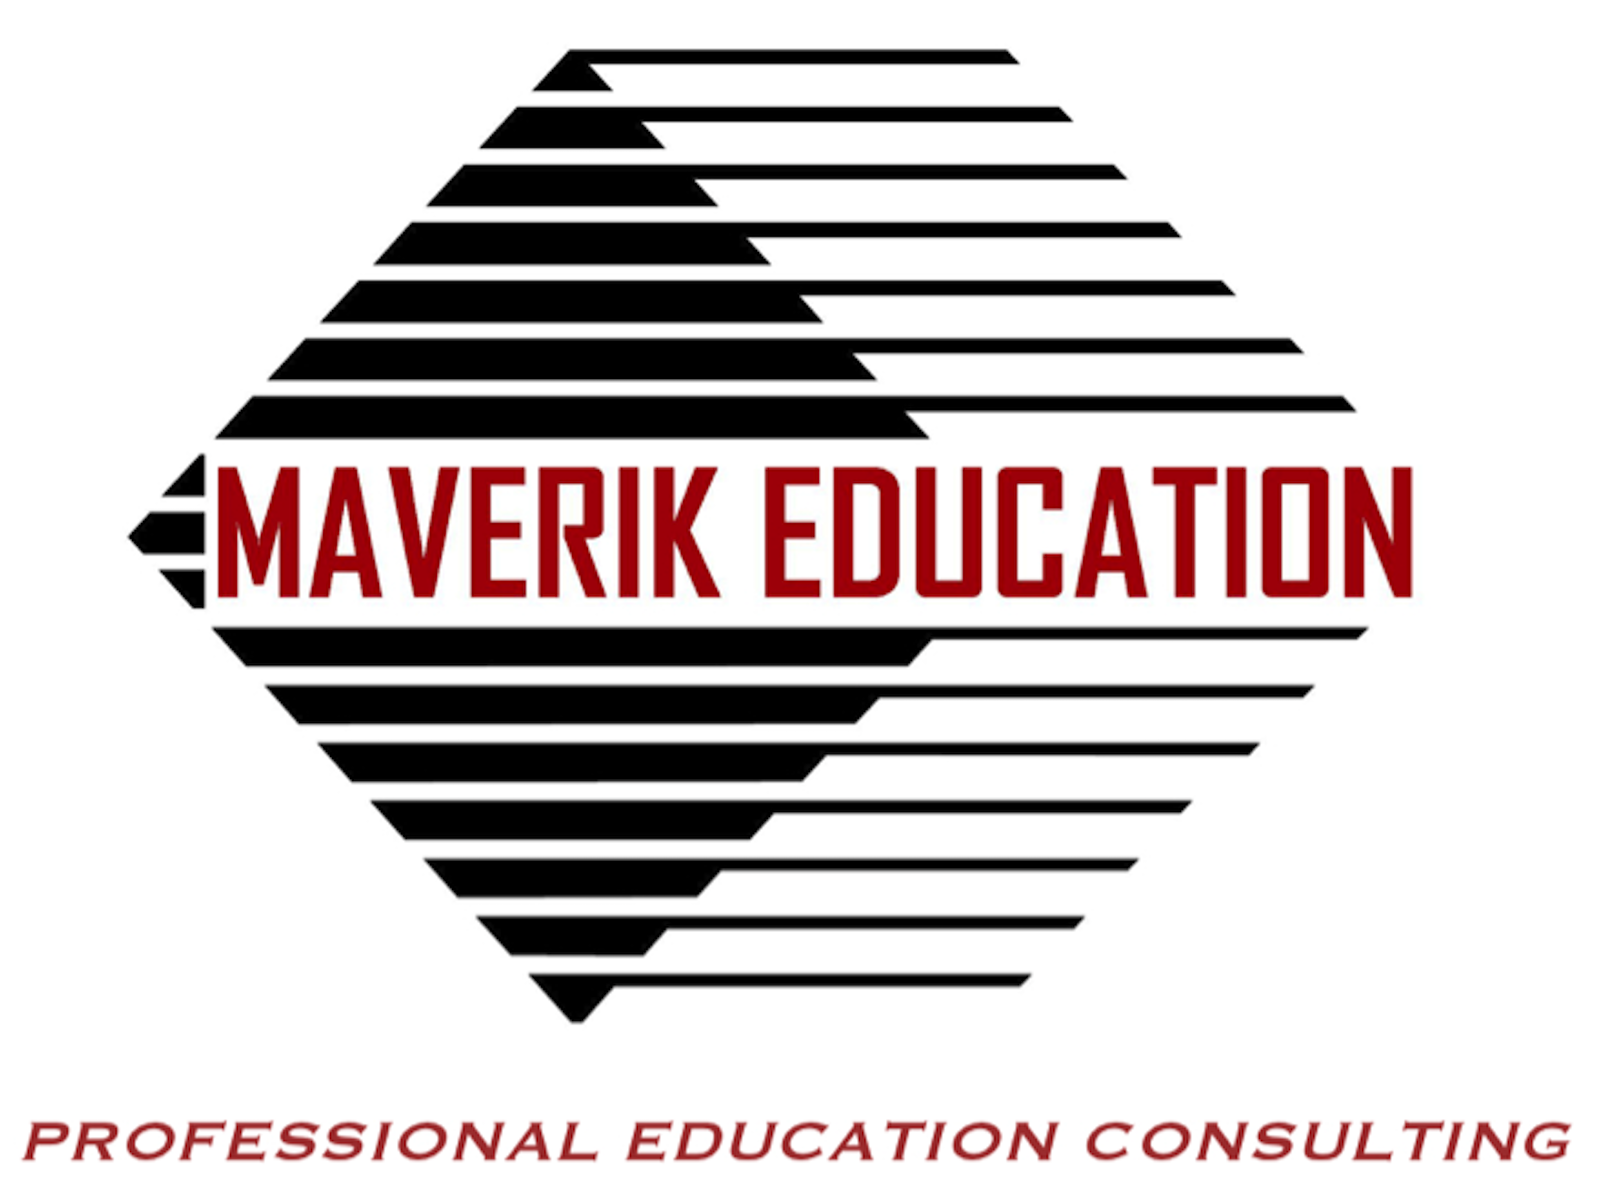 MAVERIK EDUCATION LLC